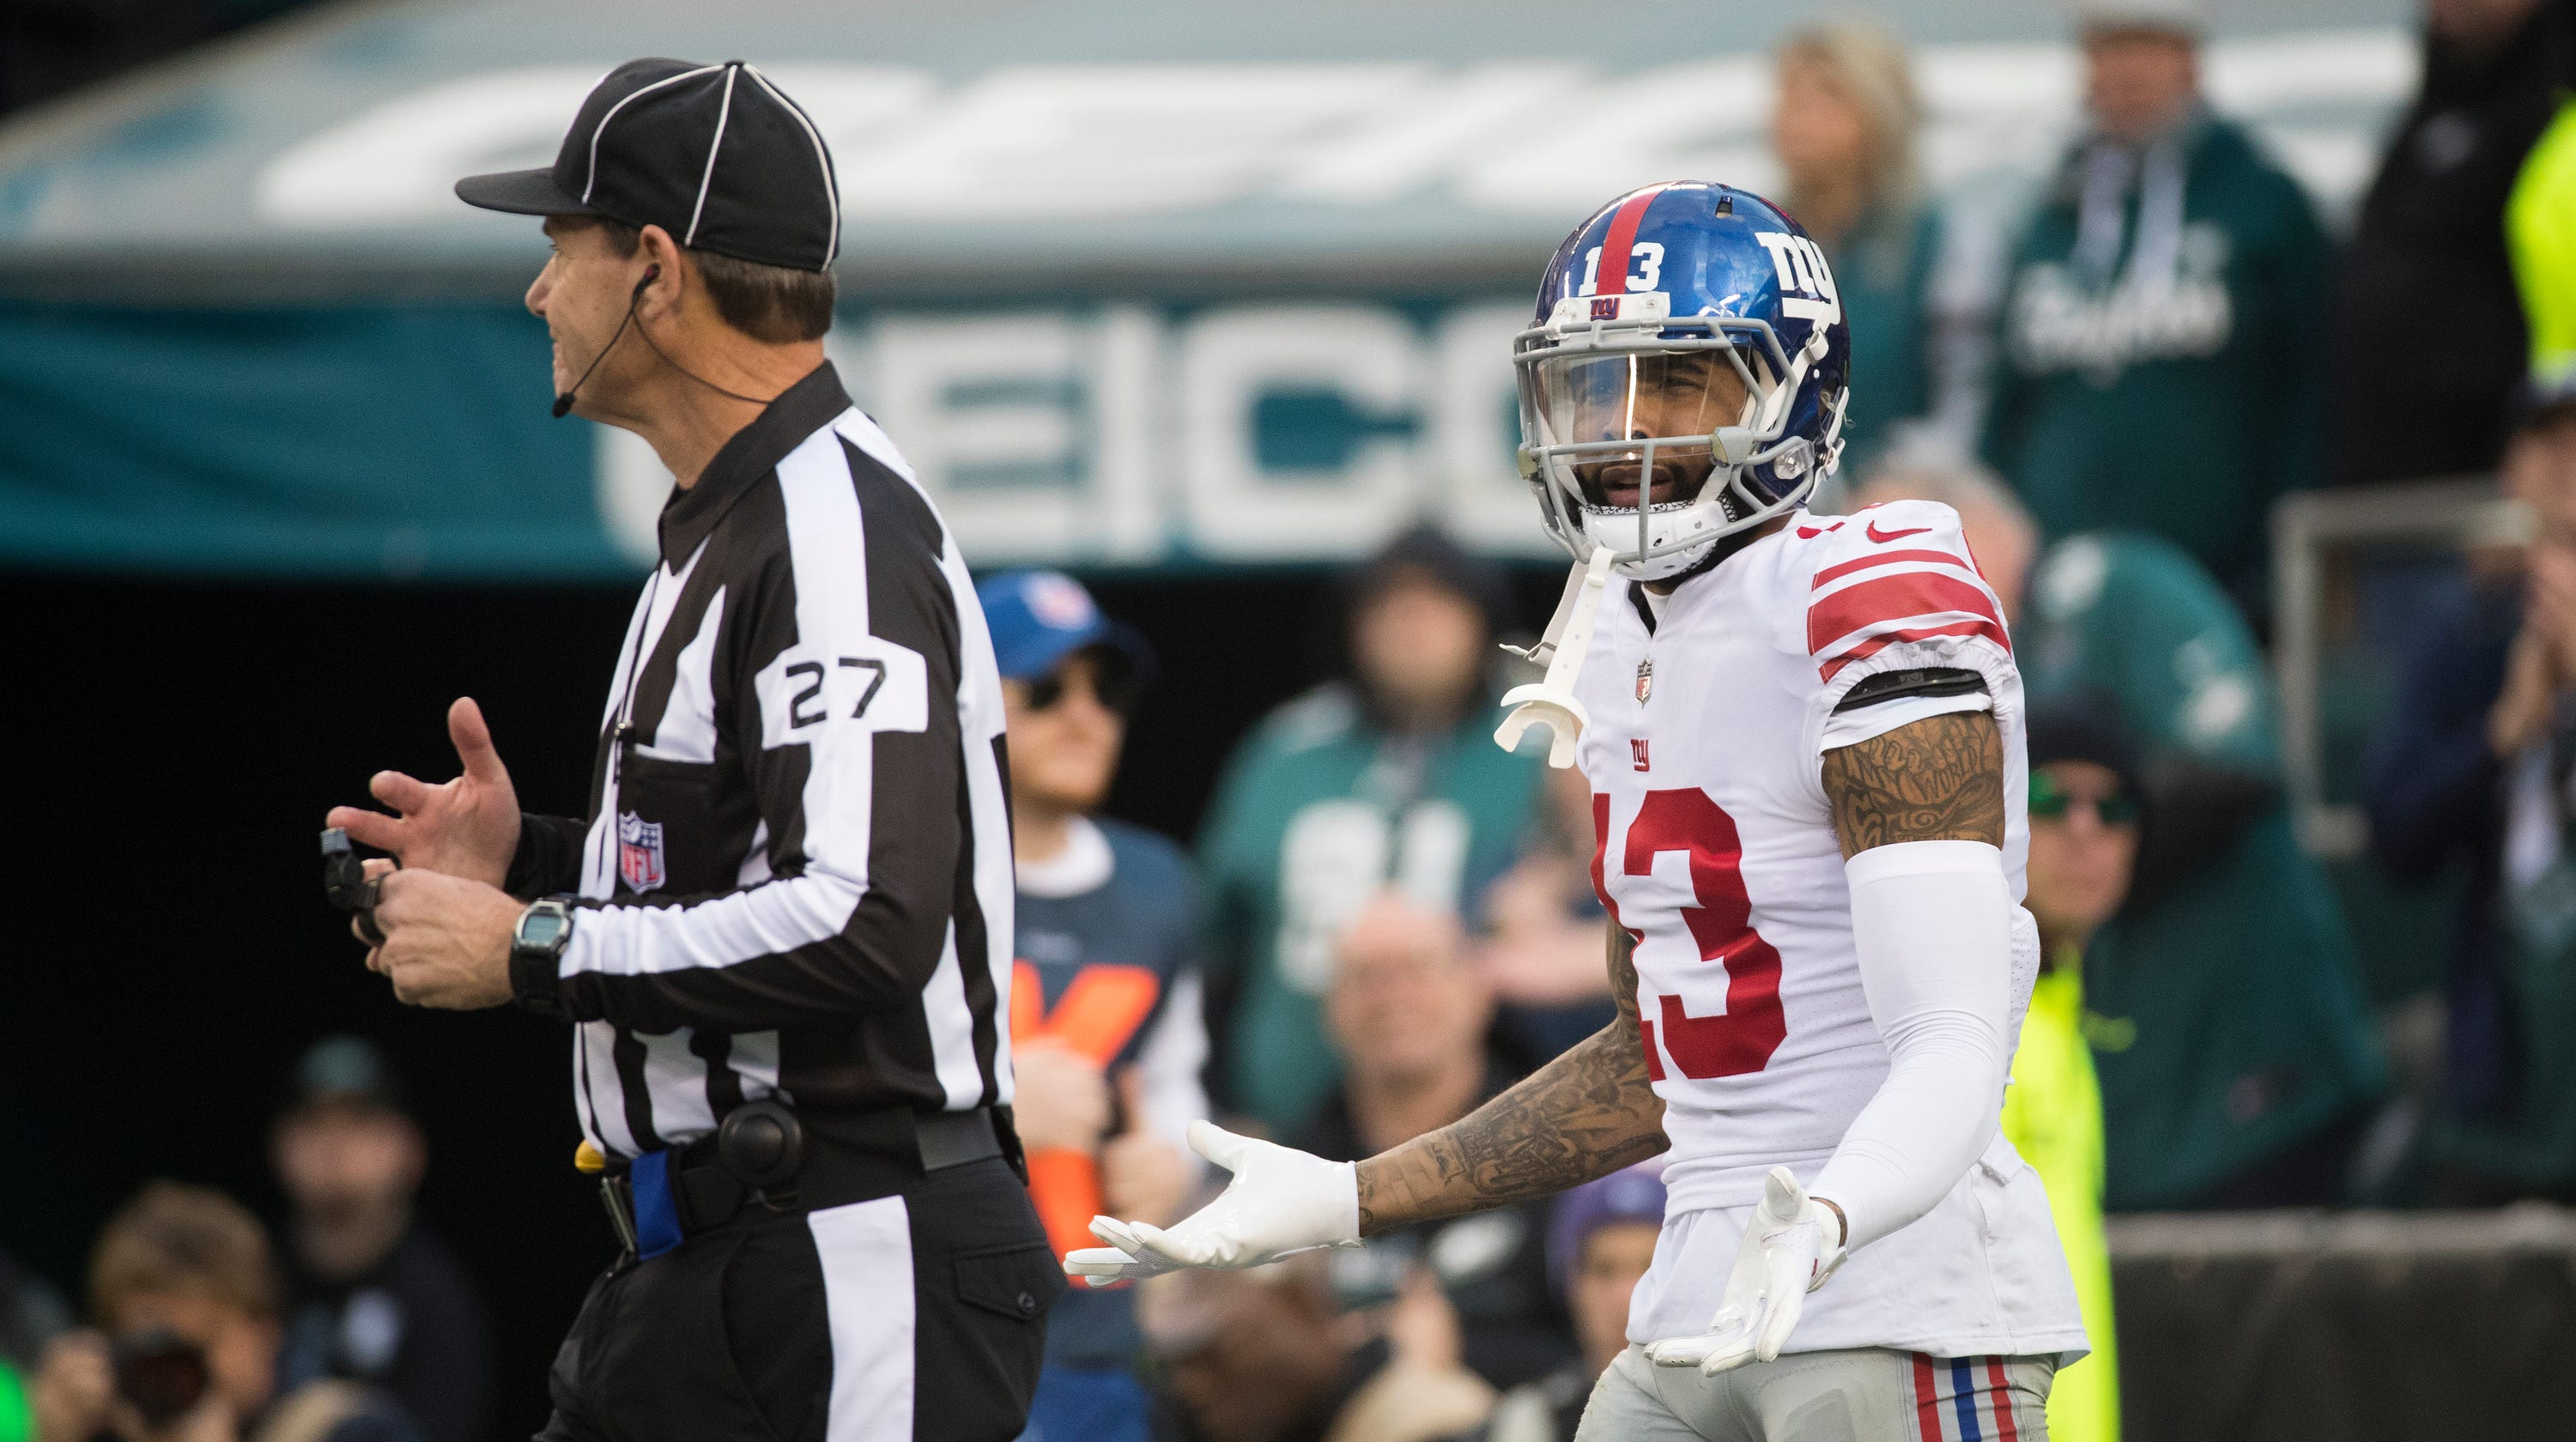 Eagles  2nd-half leaves Giants  Odell Beckham fuming  can that blueprint  continue  7e7fef0f4